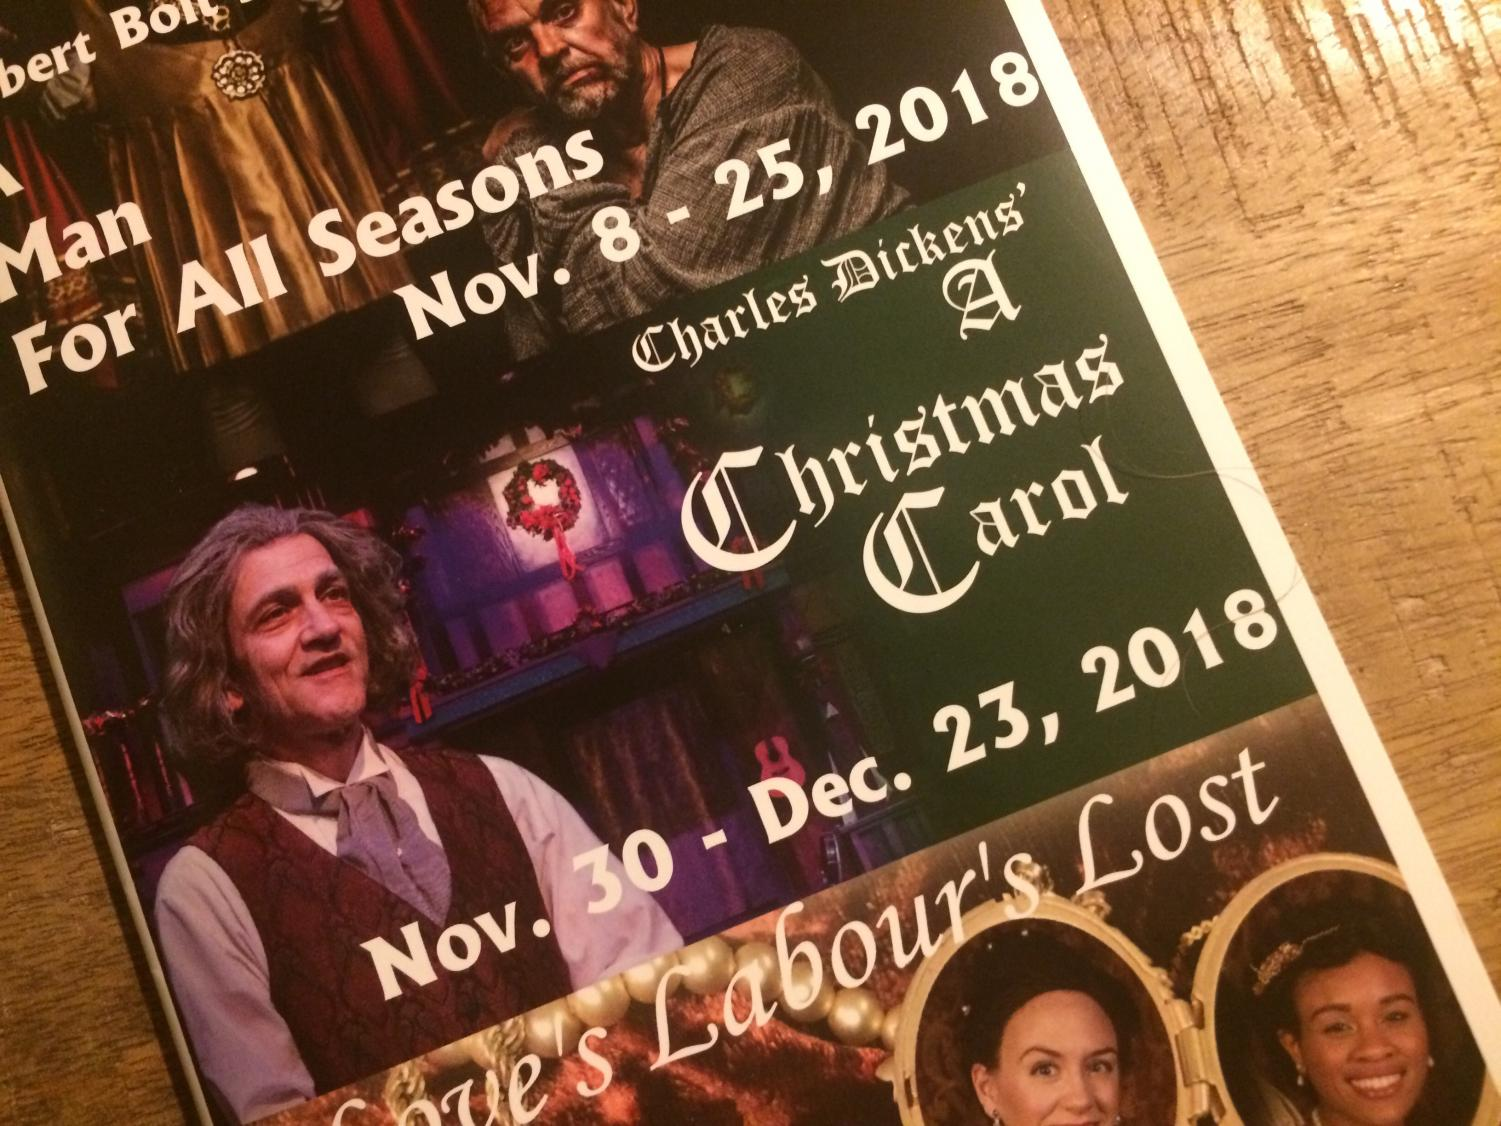 Playgoers received programs for the Shakespeare Tavern's performance of A Christmas Carol. Vivid, vivacious, and passionate, the company's interpretation leaves an indisputable mark on the viewer. Light on traditional dialogue and heavy on singing, it more than earns its keep as a venerable Atlanta holiday tradition.